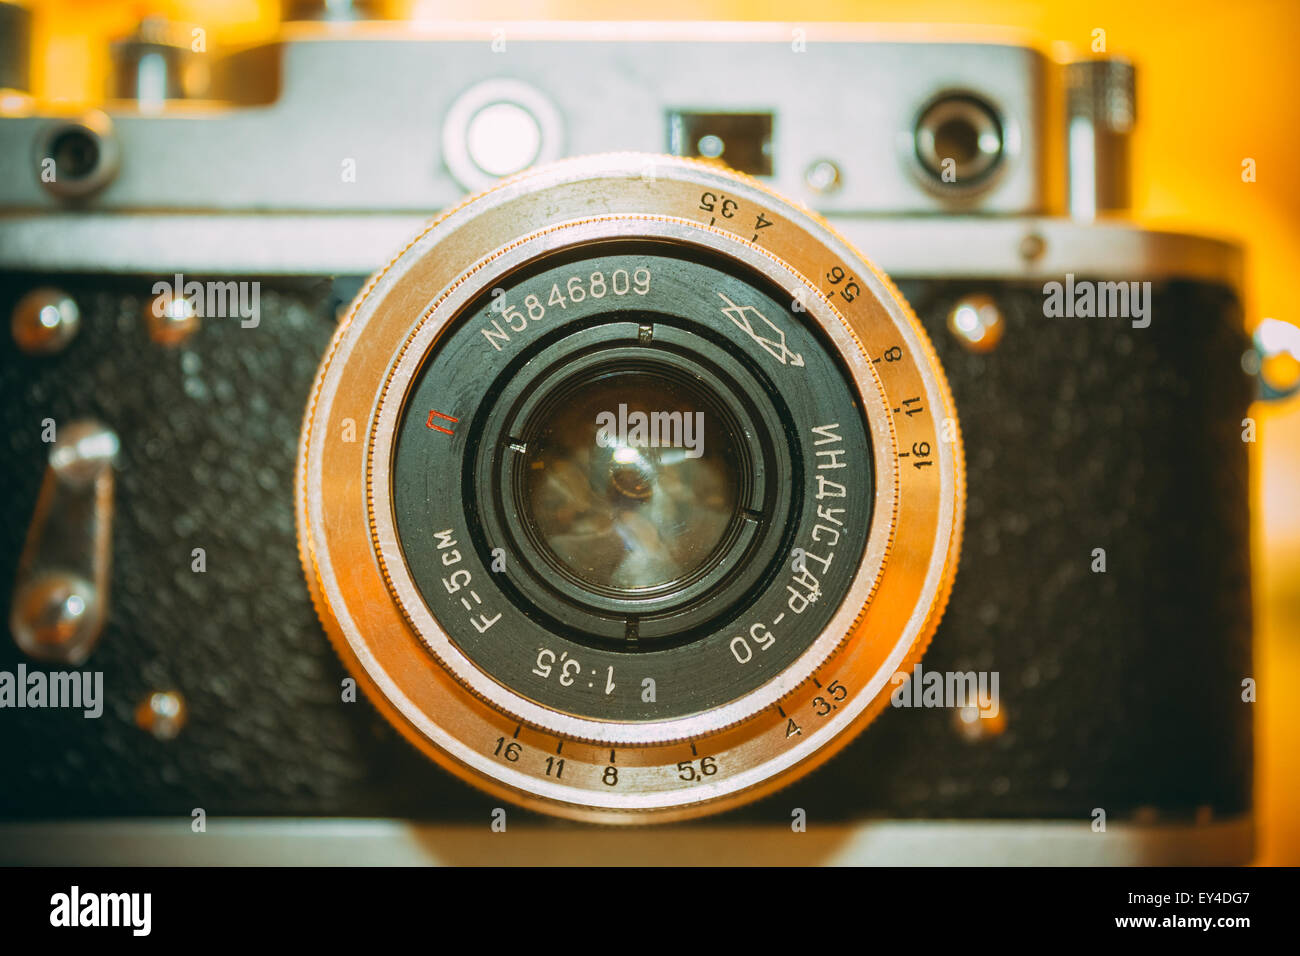 Russian Soviet Vintage Camera - Zorkiy 2-S. Zorki 2-S is small-format rangefinder camera introduced in 1956 by KMZ - Stock Image